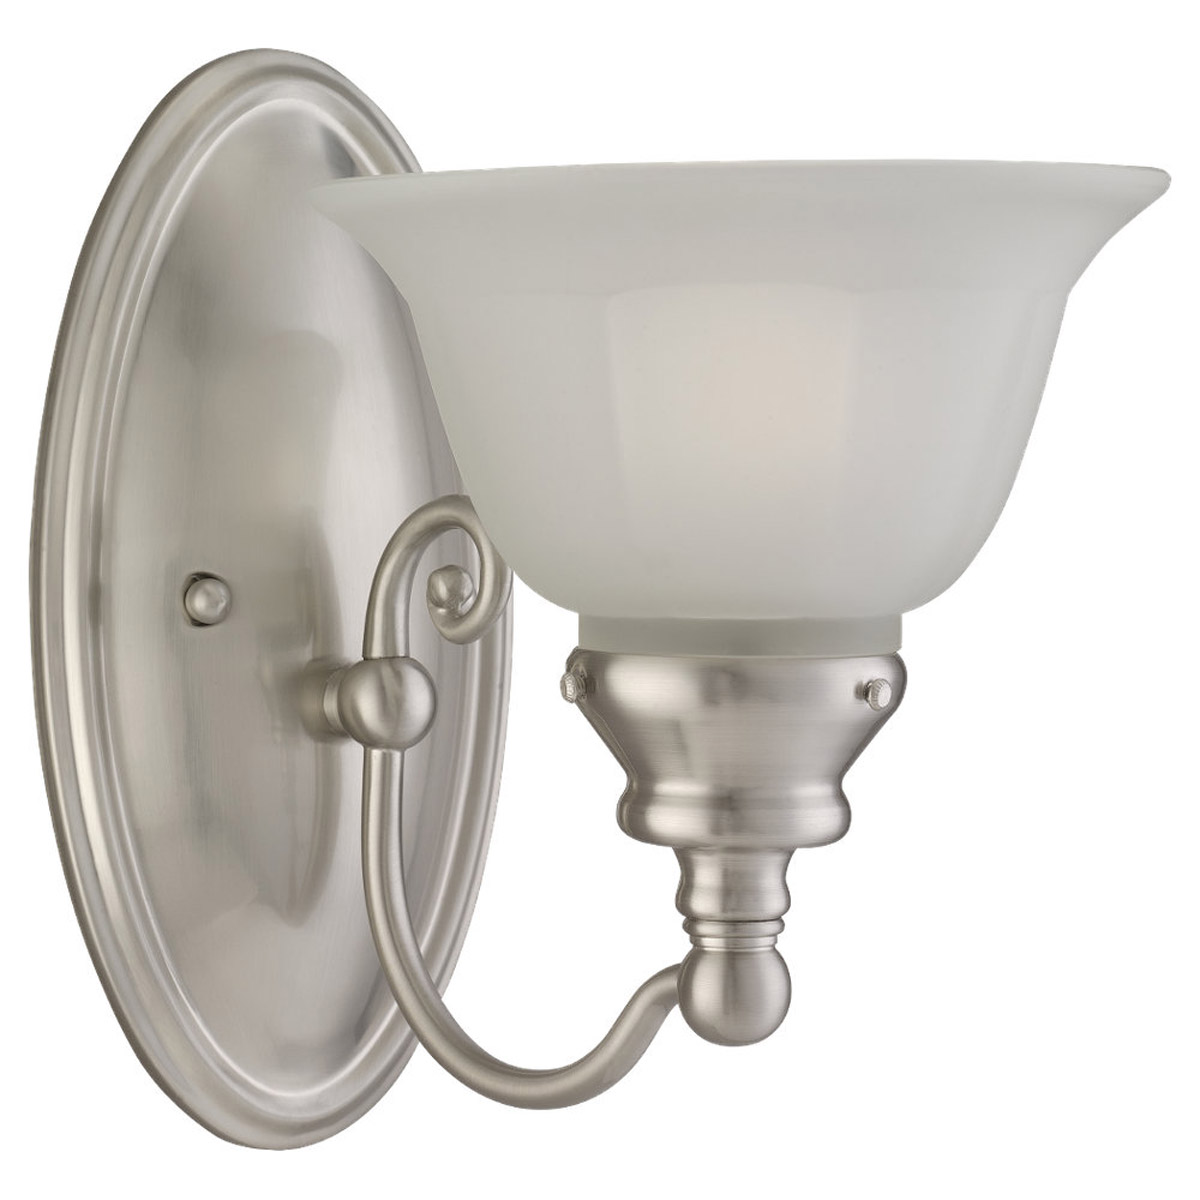 Sea Gull Lighting Canterbury 1 Light Bath Vanity in Brushed Nickel 44650-962 photo